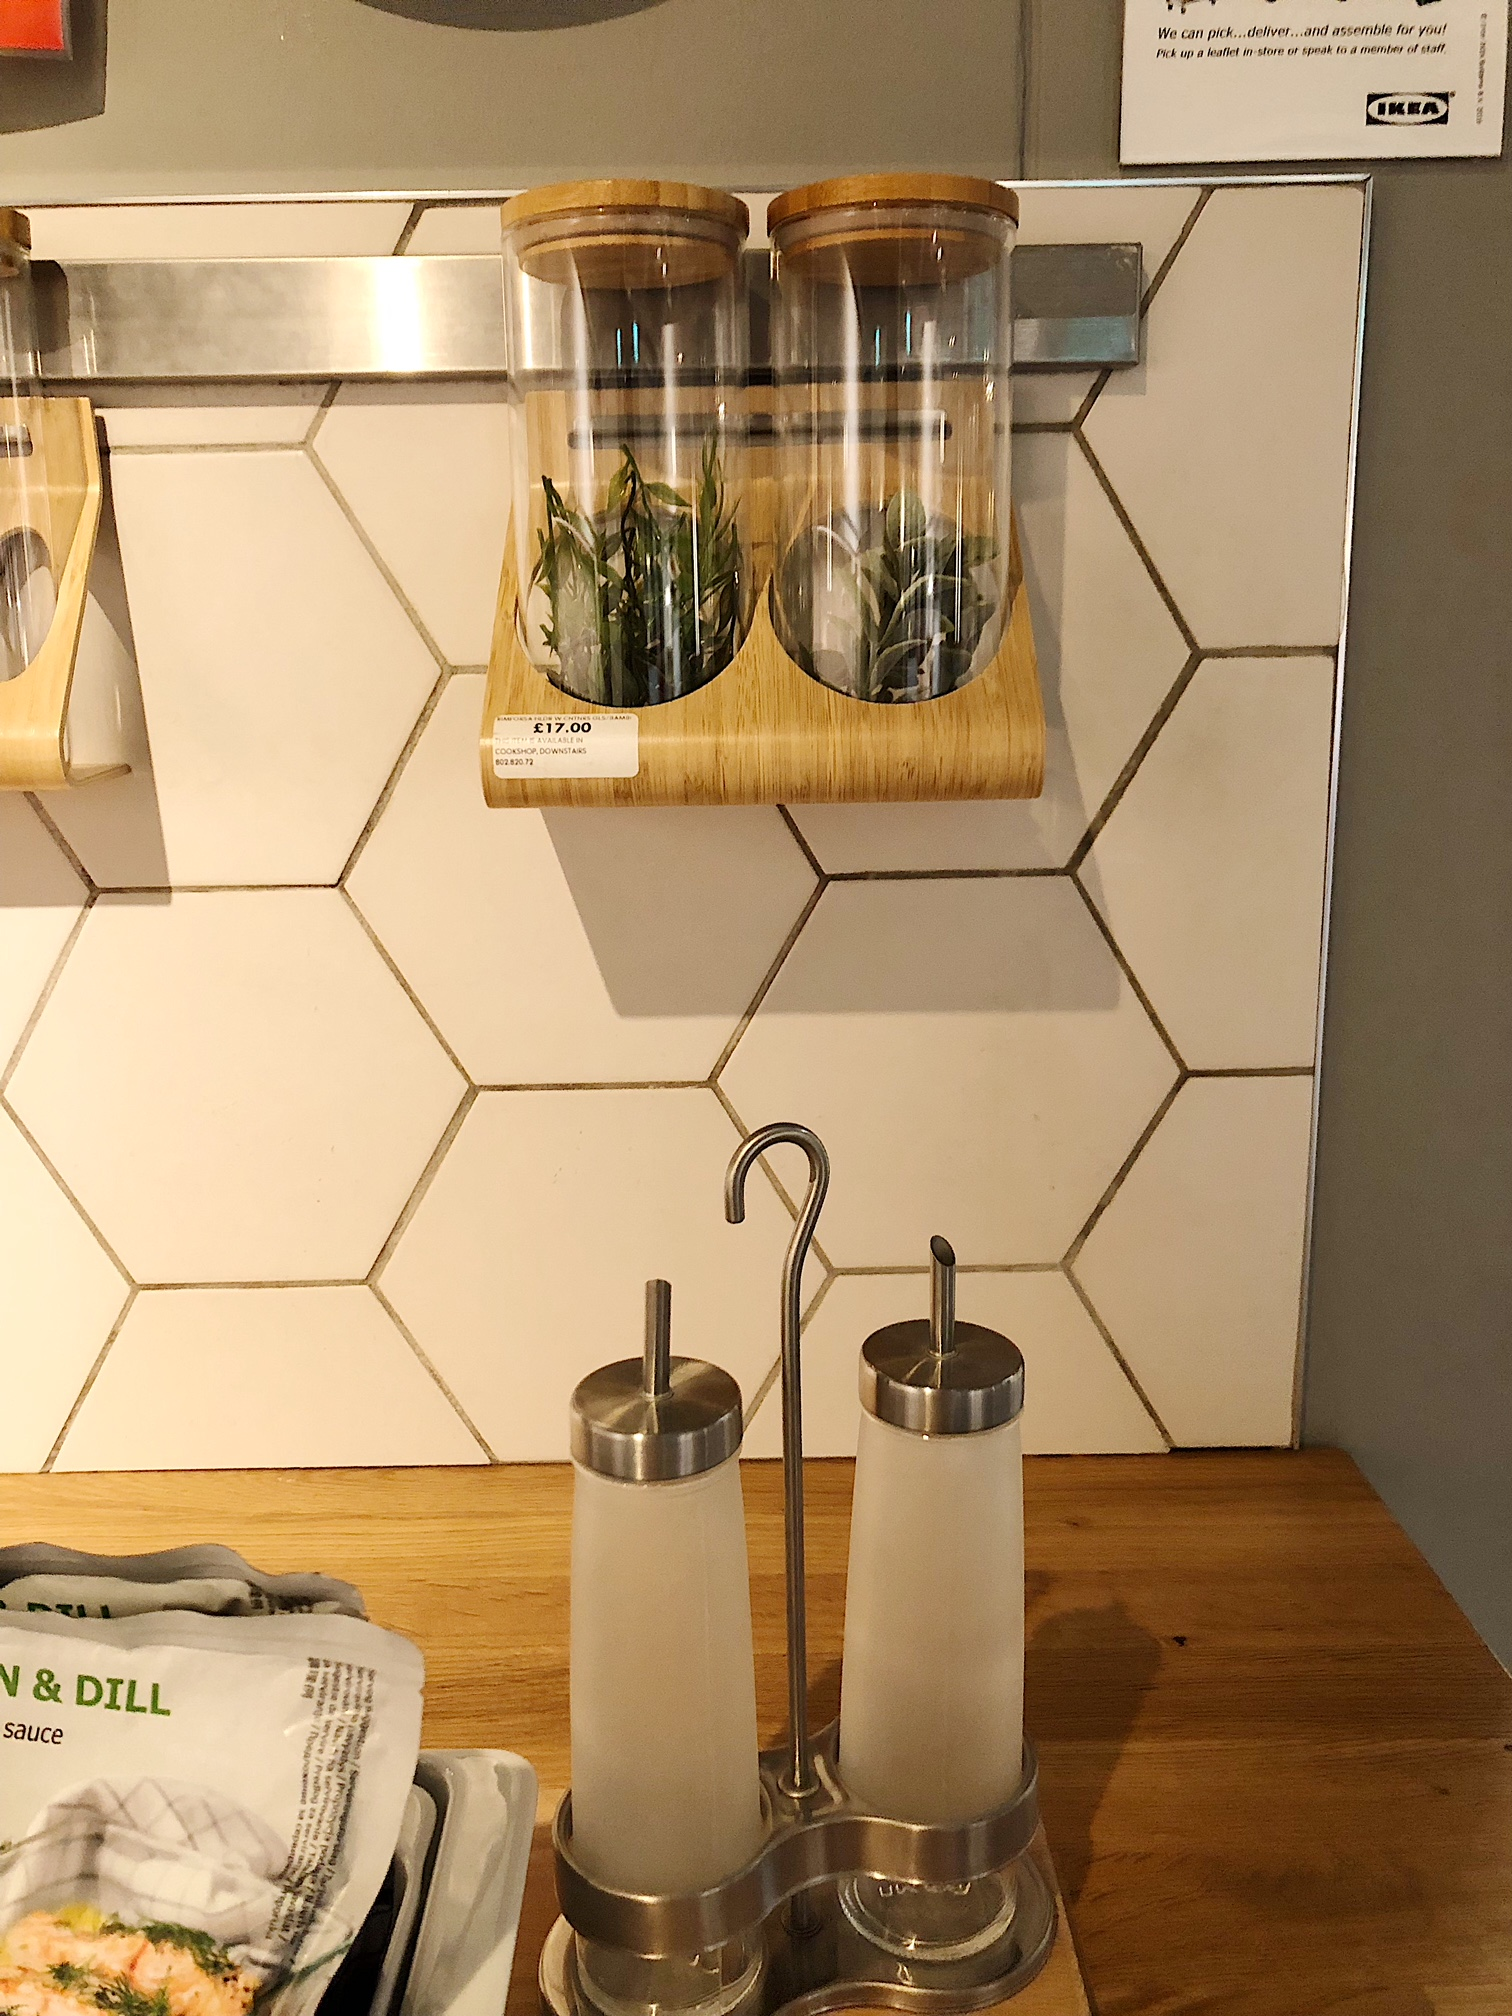 honeycomb tiles for kitchen at ikea.JPG